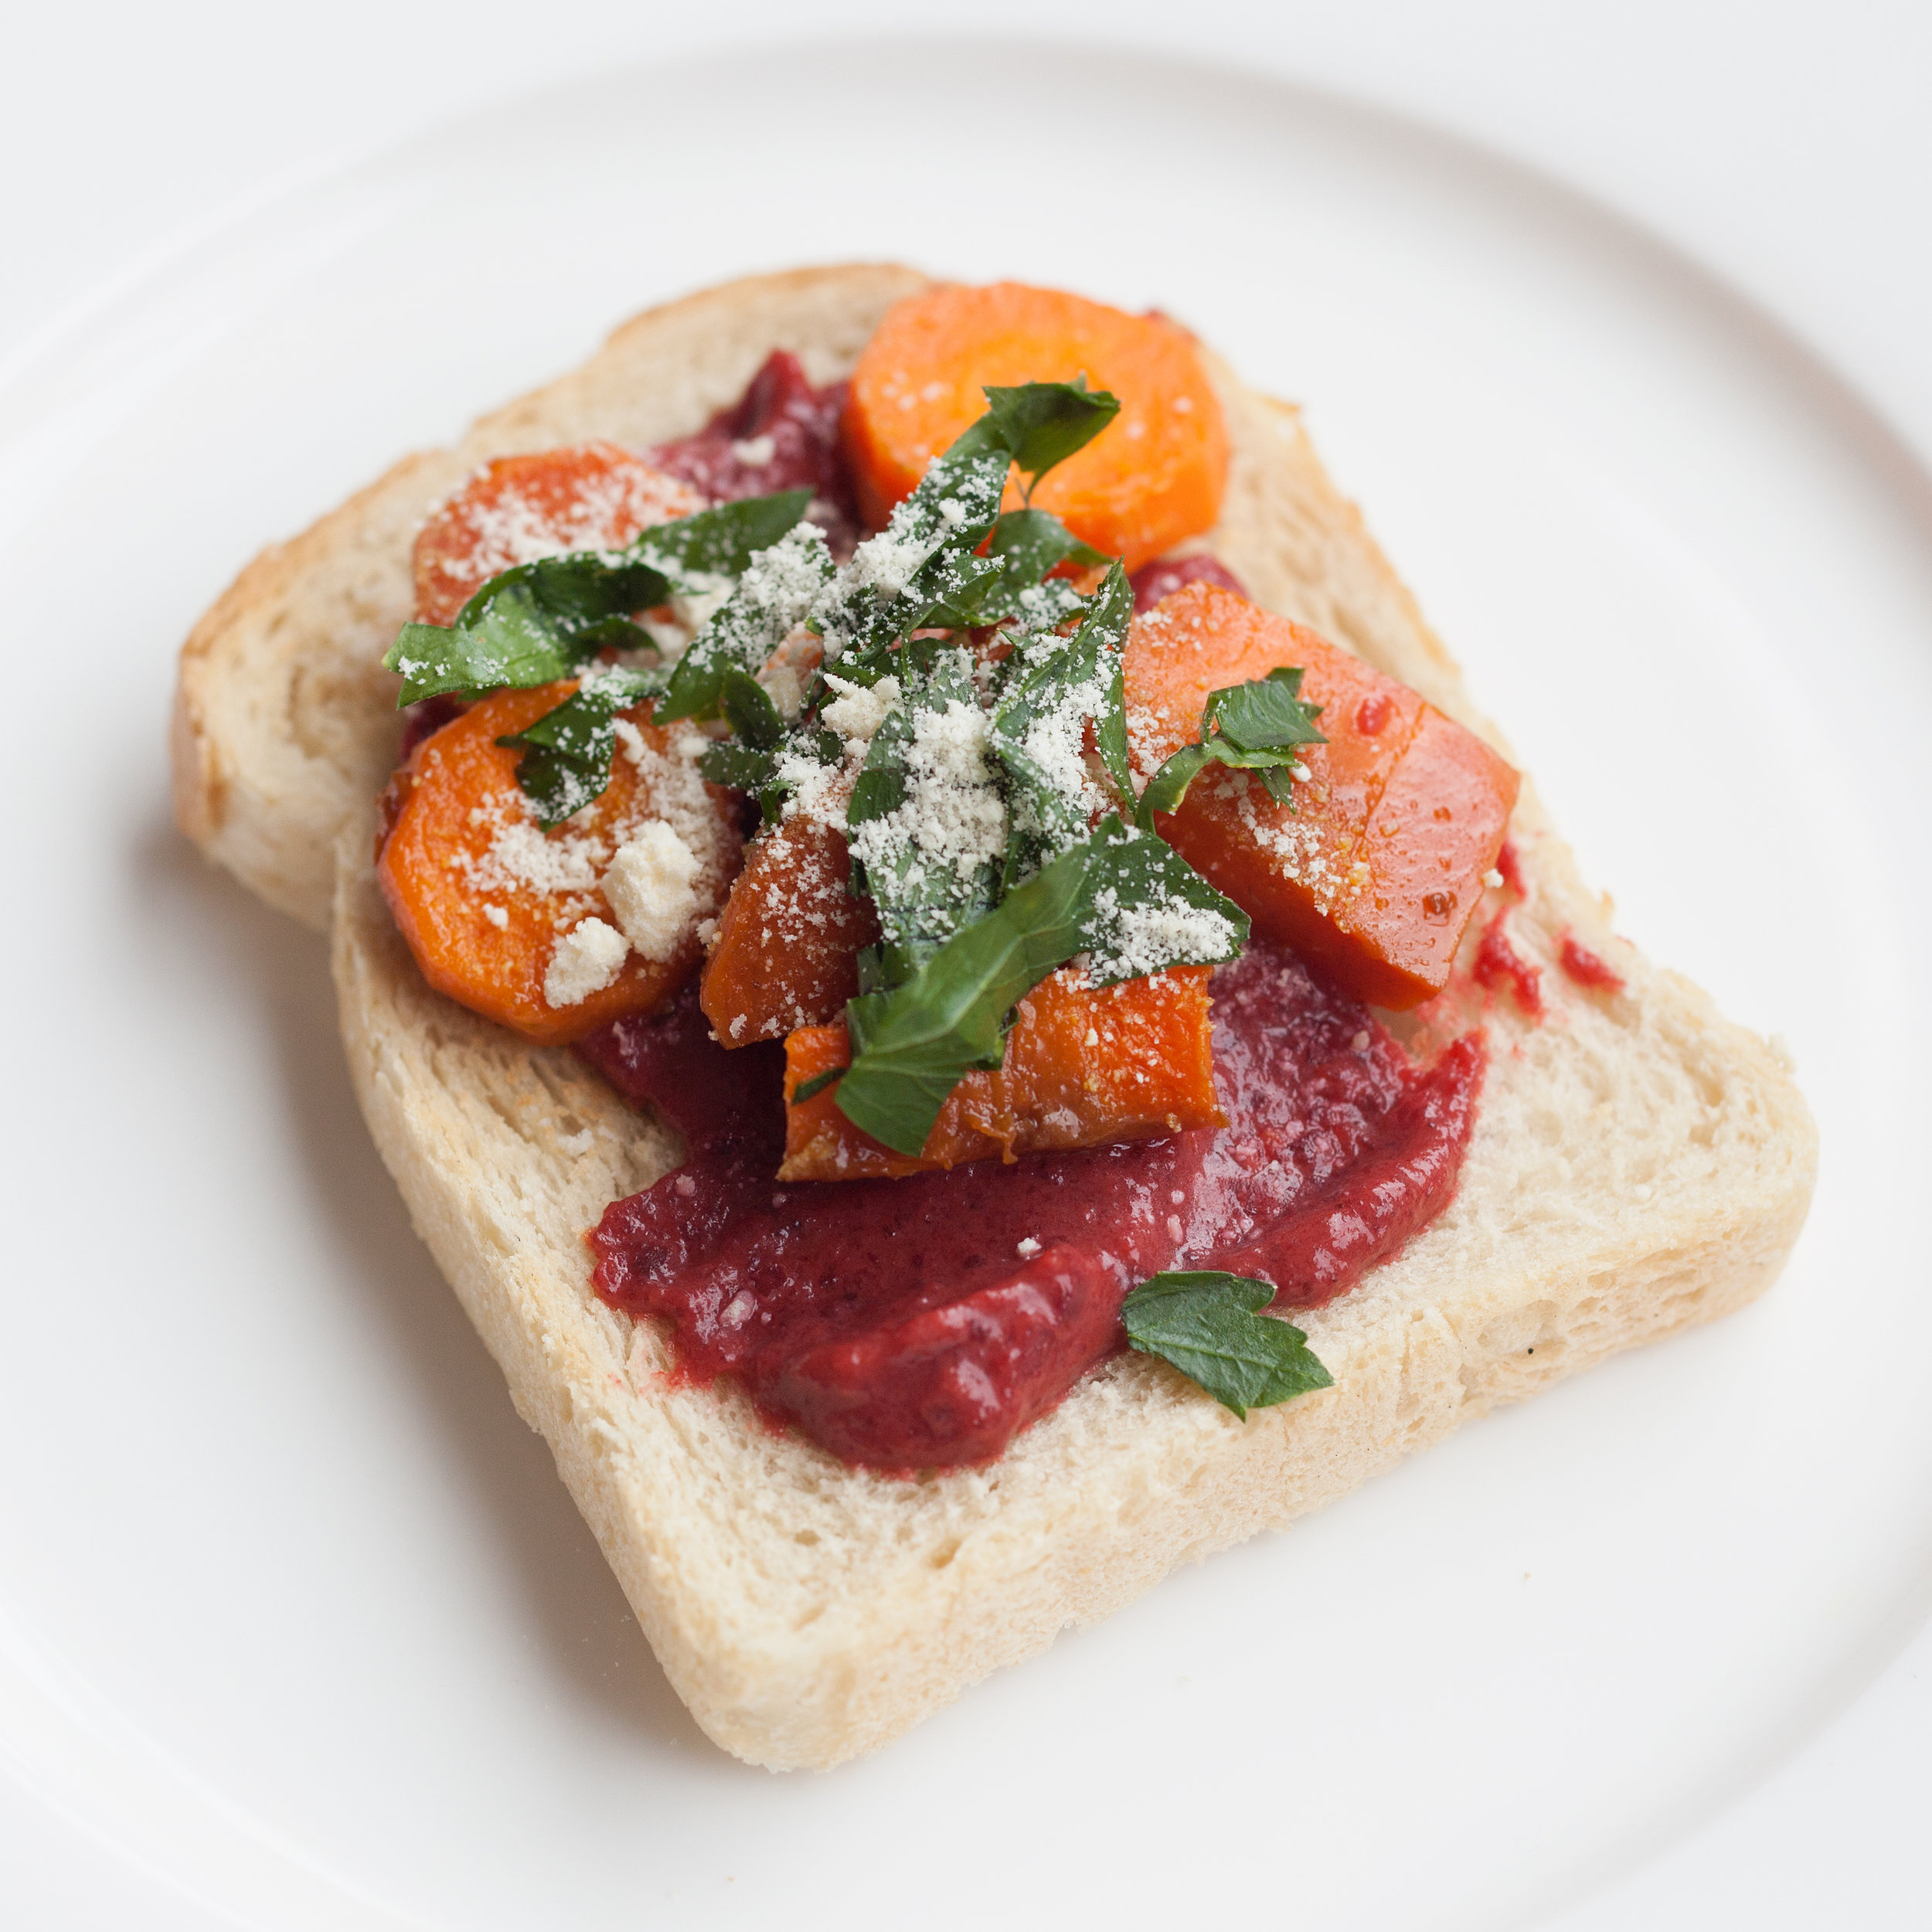 Smashed beetroot and carrots on toast.